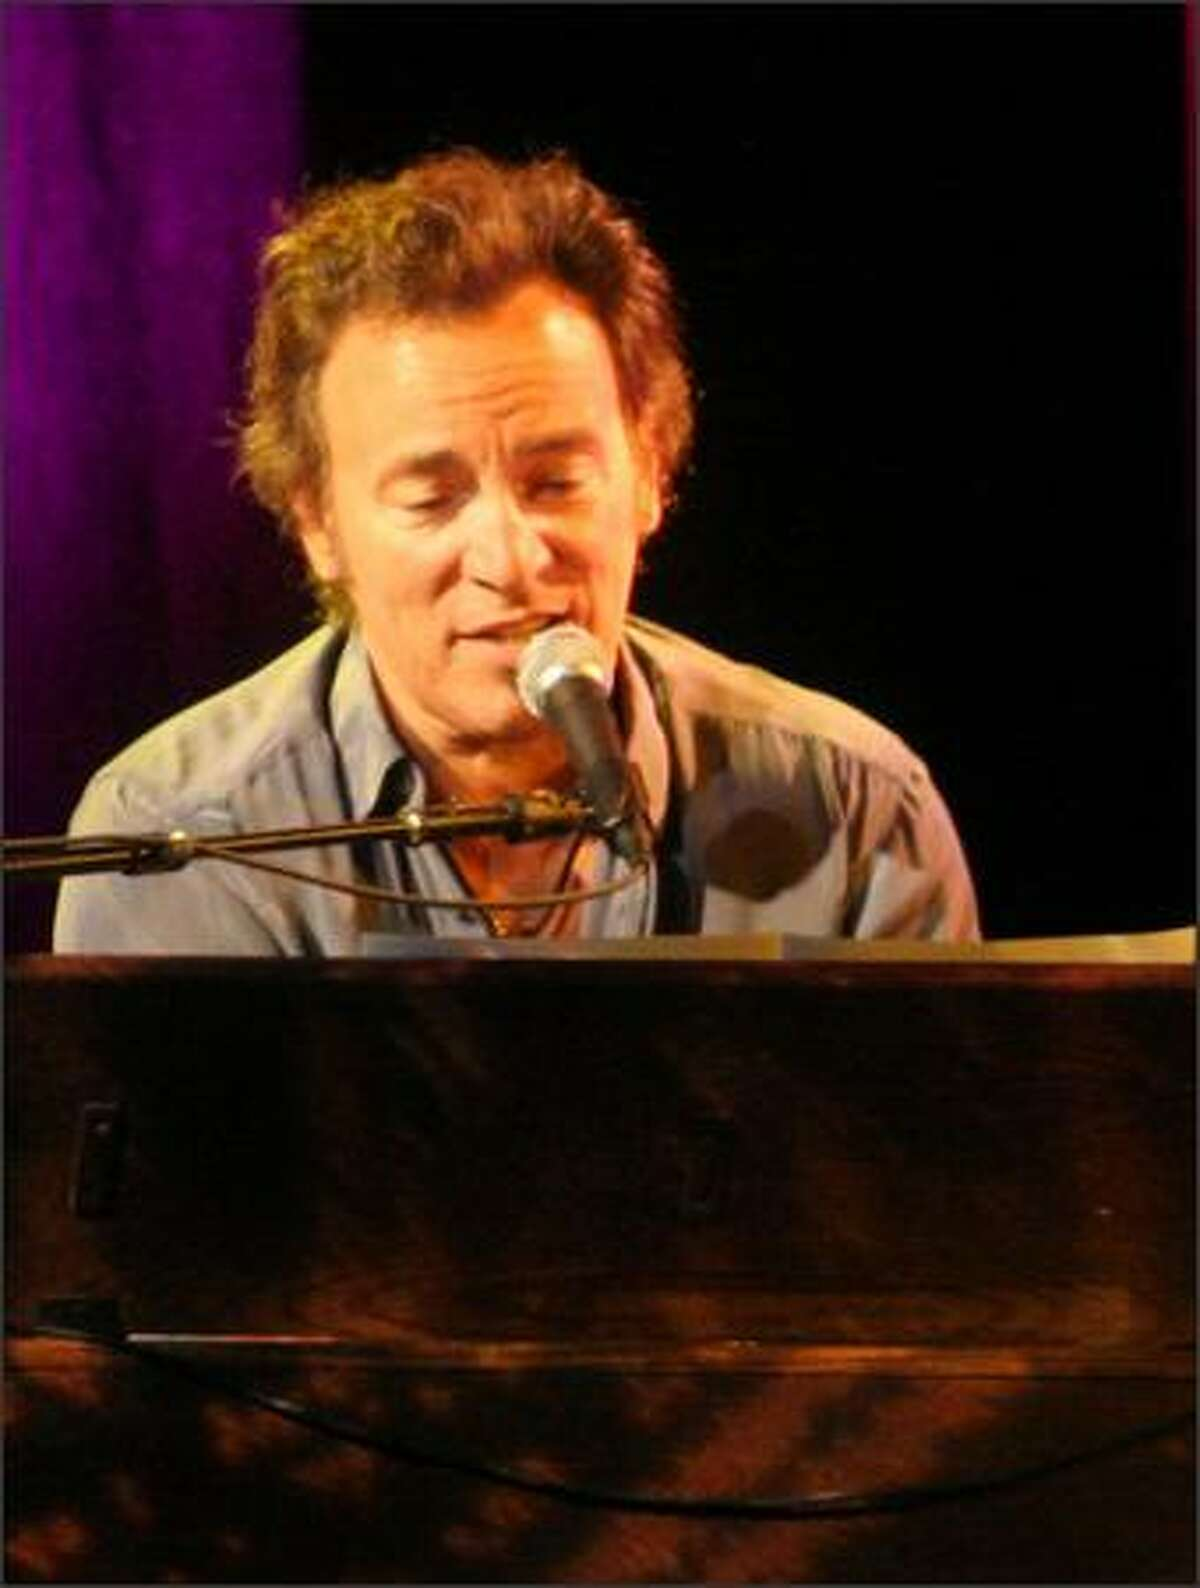 Bruce Springsteen works the keyboard to open the show with